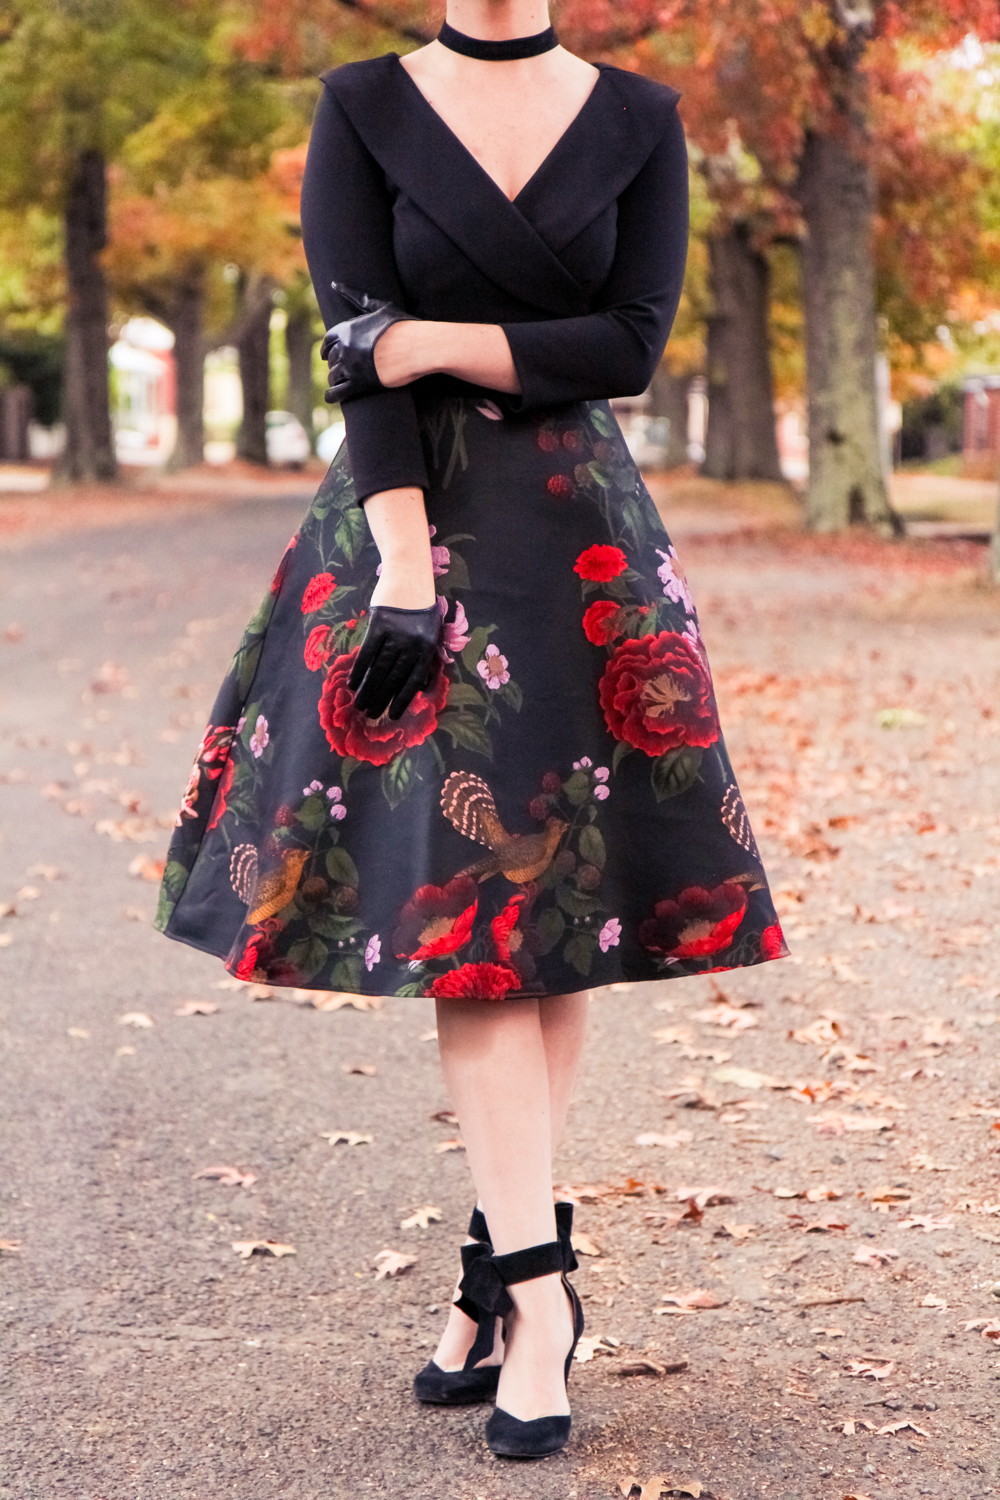 Liana of @findingfemme wears black floral Review dress